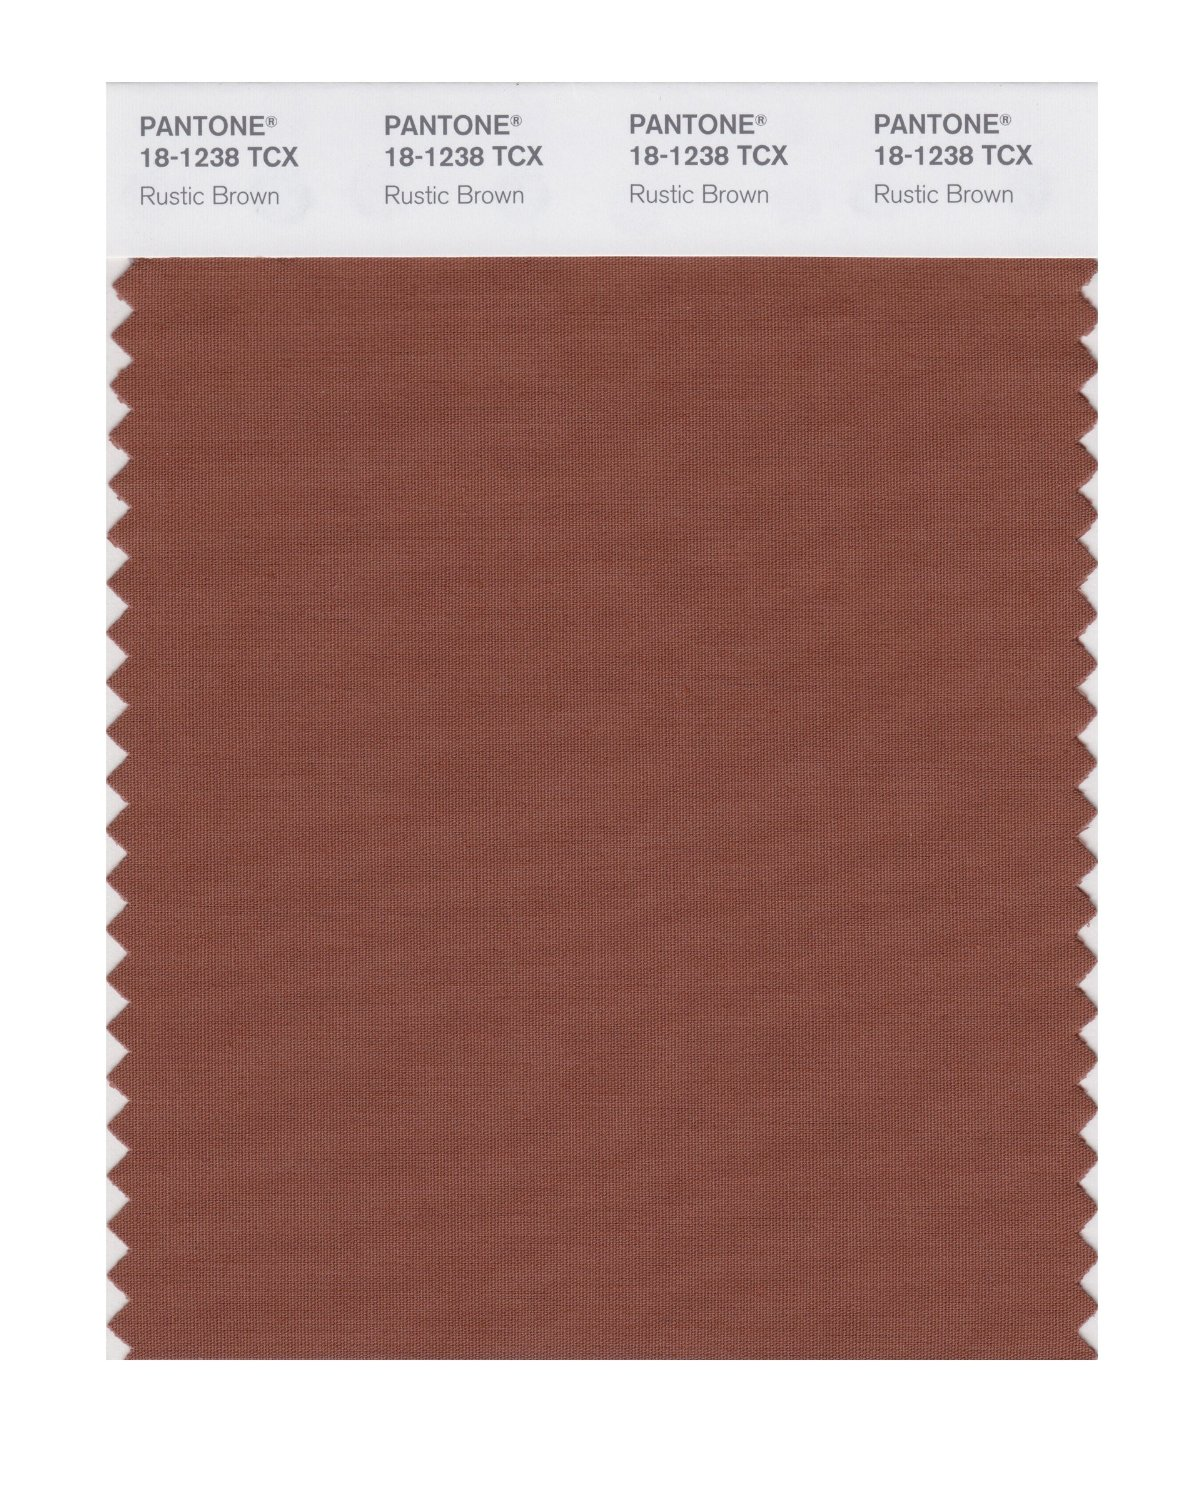 Pantone Smart Swatch 18-1238 Rustic Brown